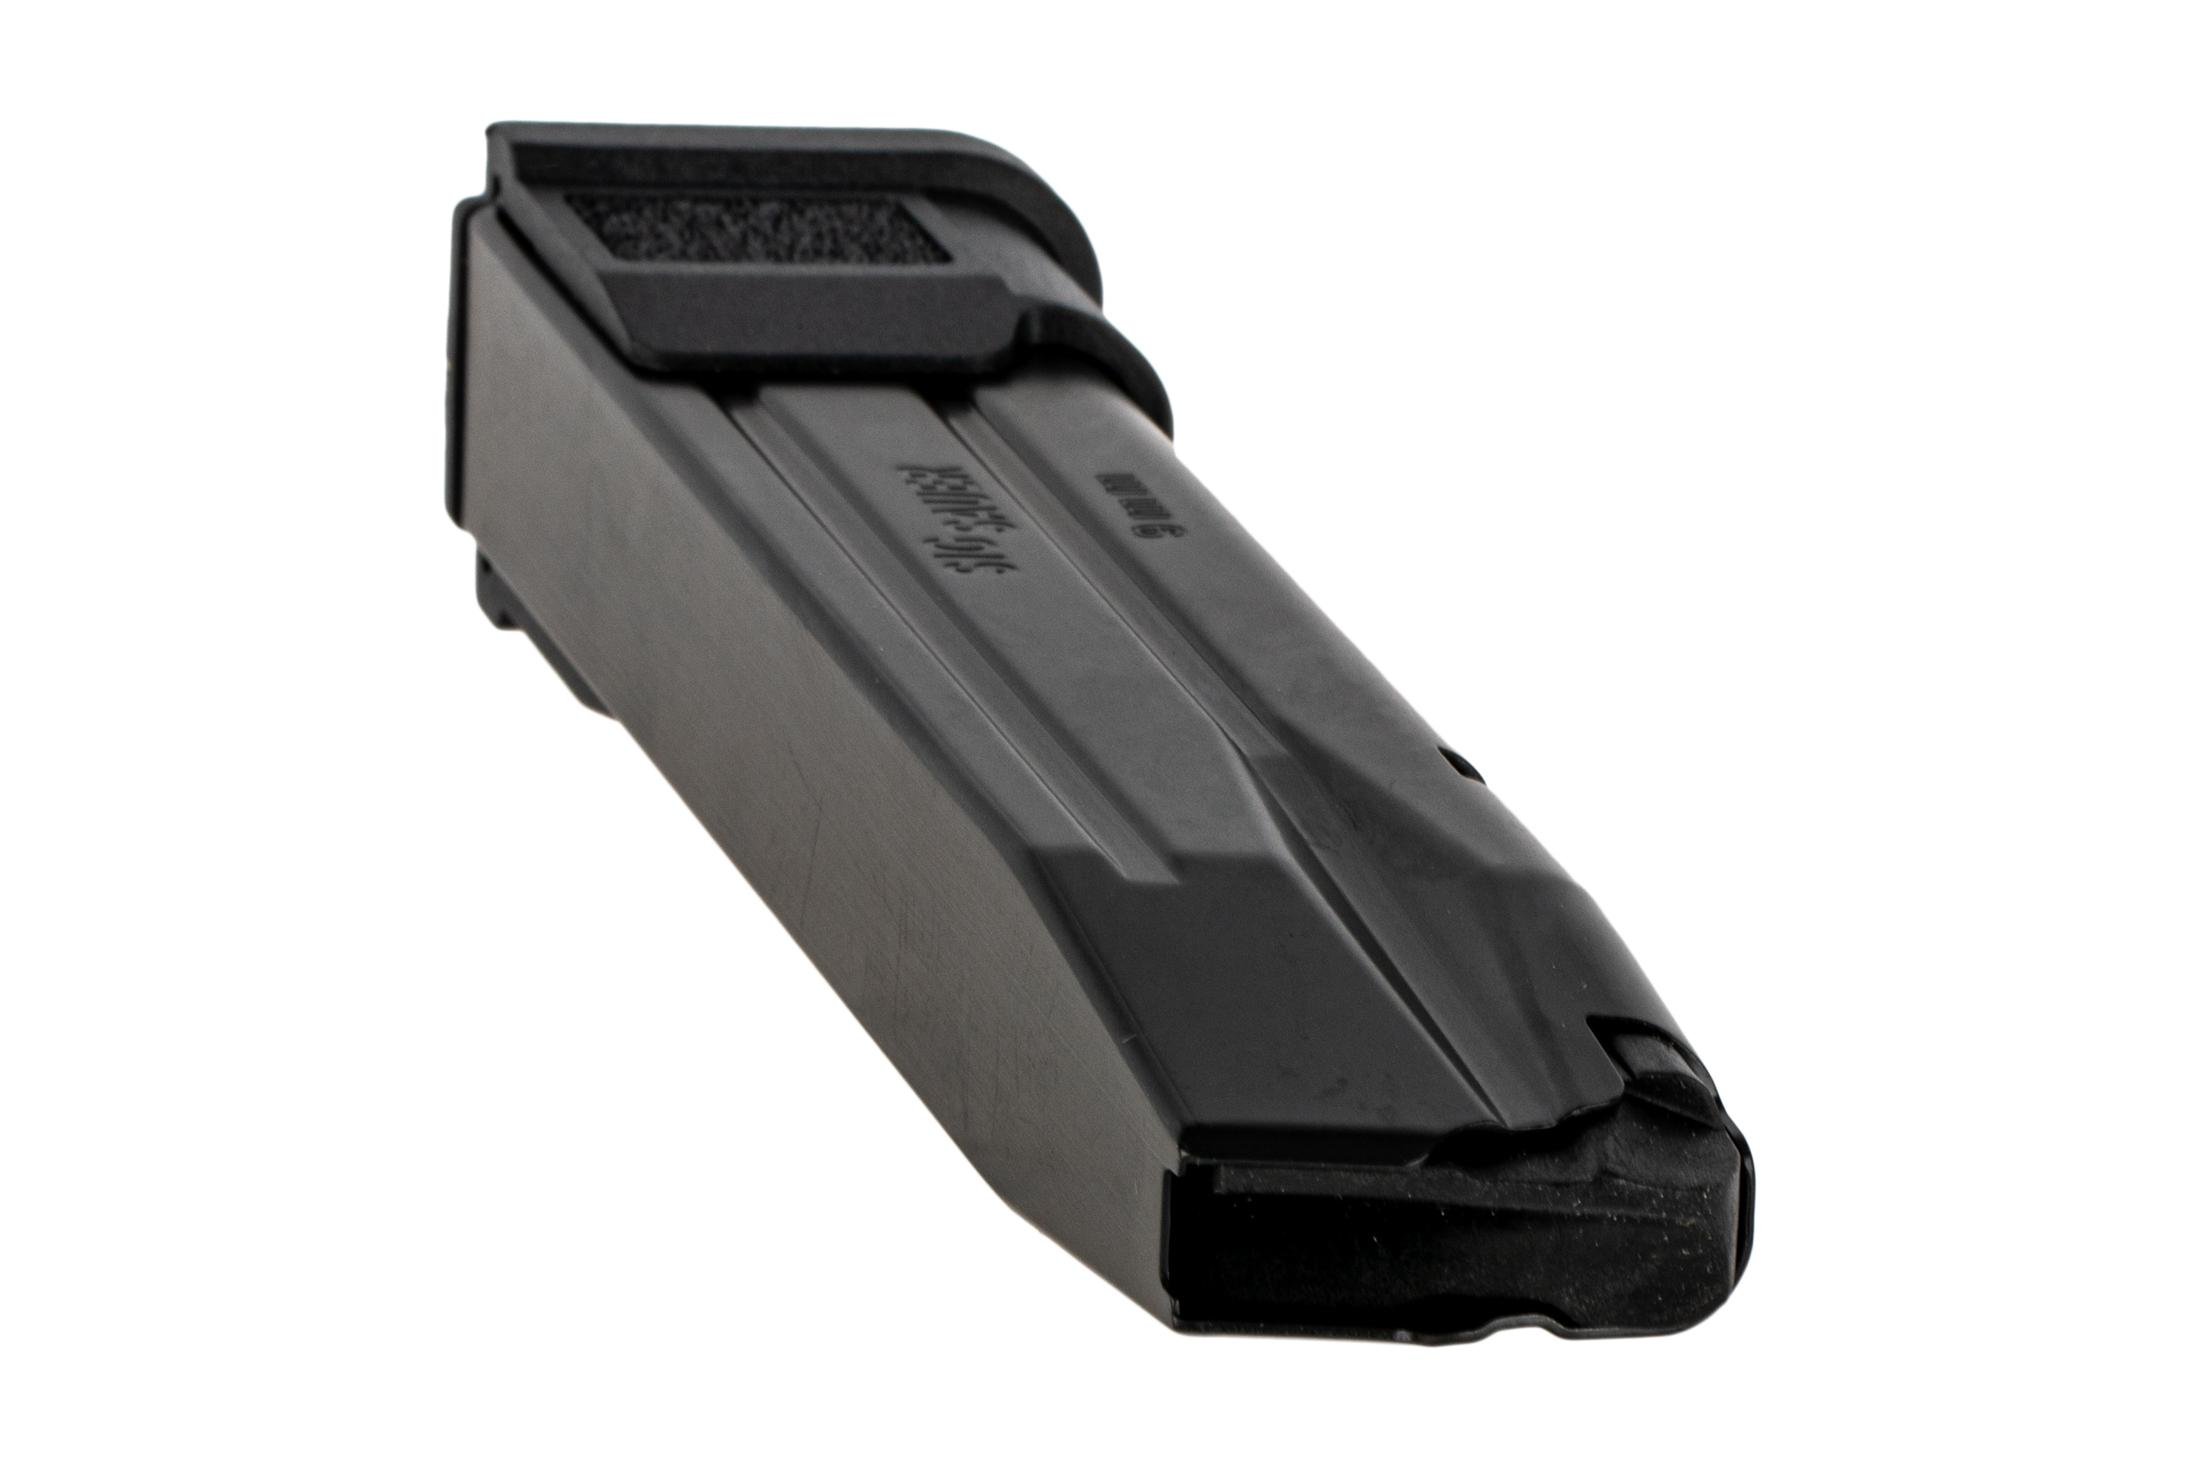 The Sig P250 21 round magazine features a black finish and side witness holes